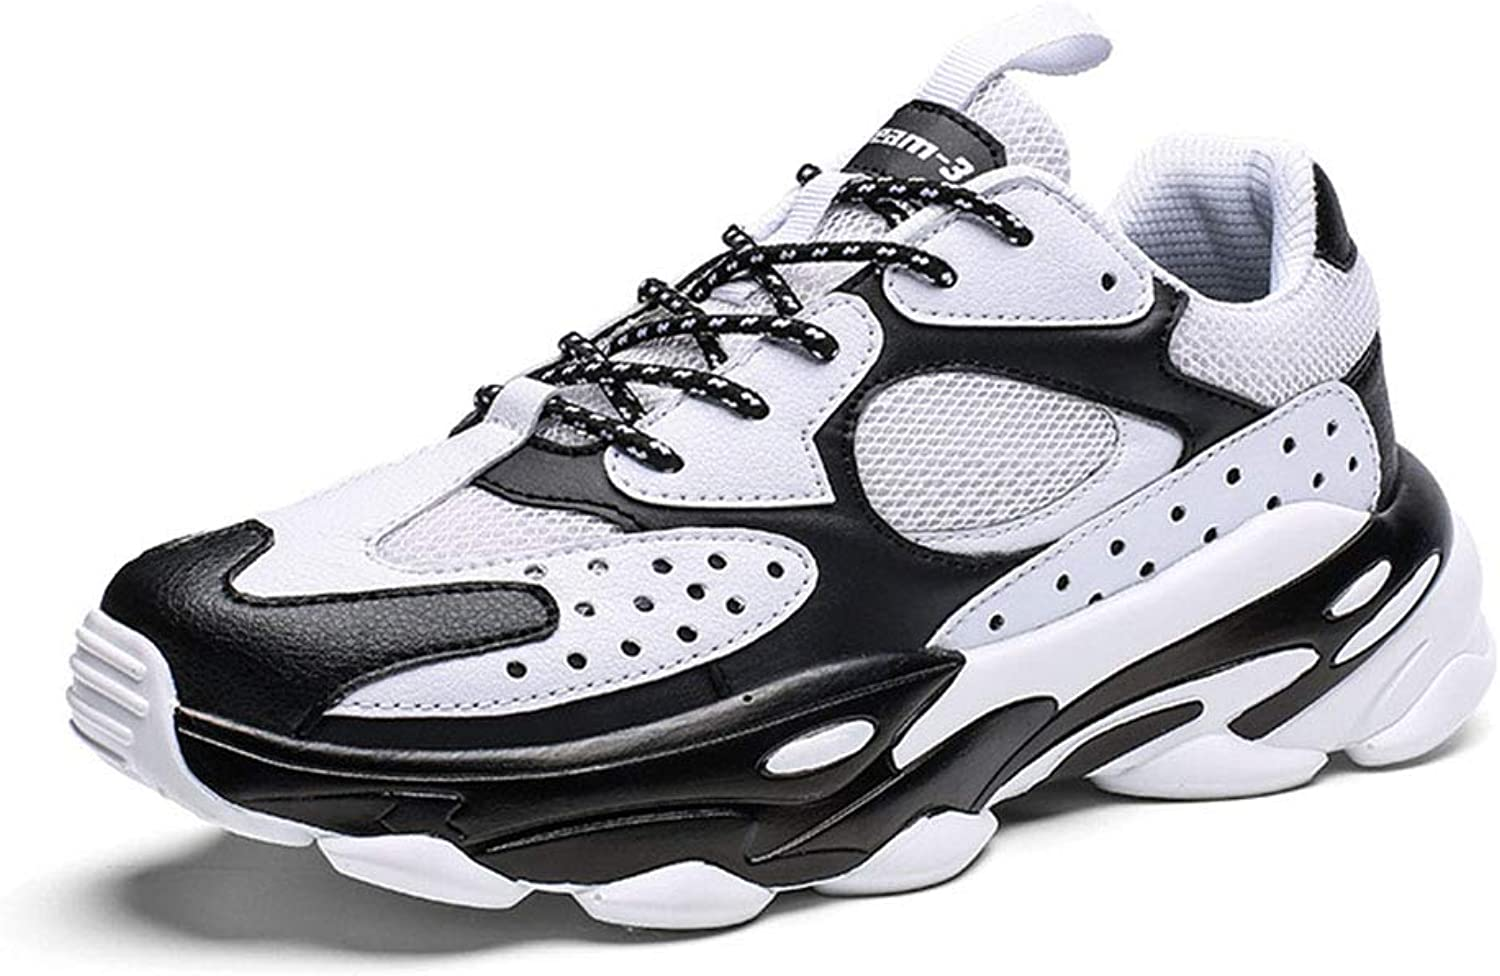 MEMIND Men Sports shoes Increase Wear Resistant Old shoes Breathable Leisure Running shoes Personality Wild Tide shoes Street Dance Basketball shoes